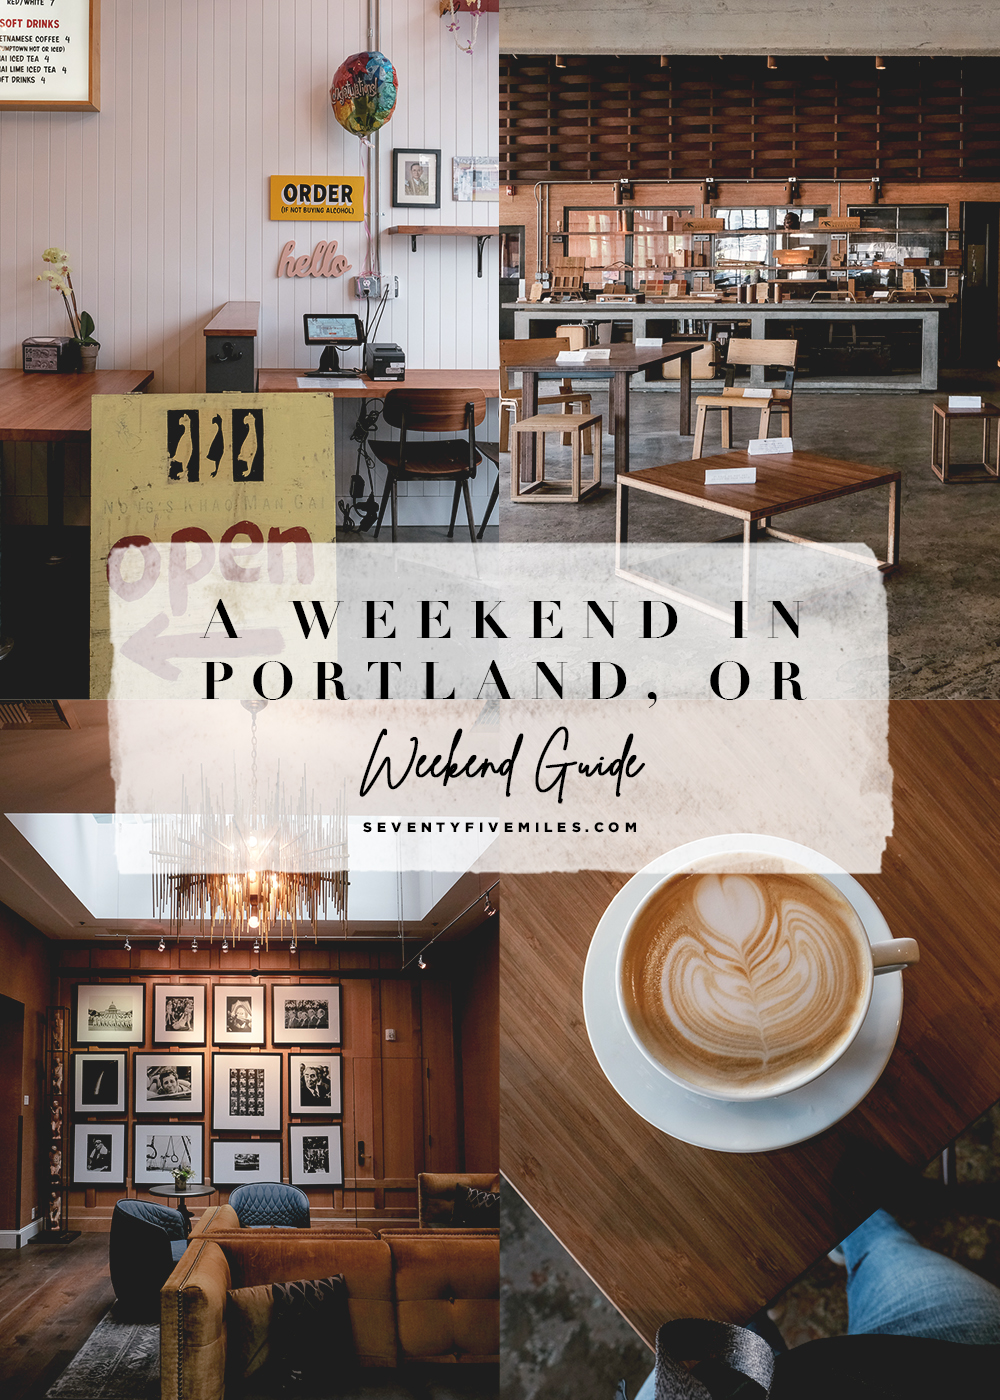 3-day Weekend Getaway to Portland, Oregon